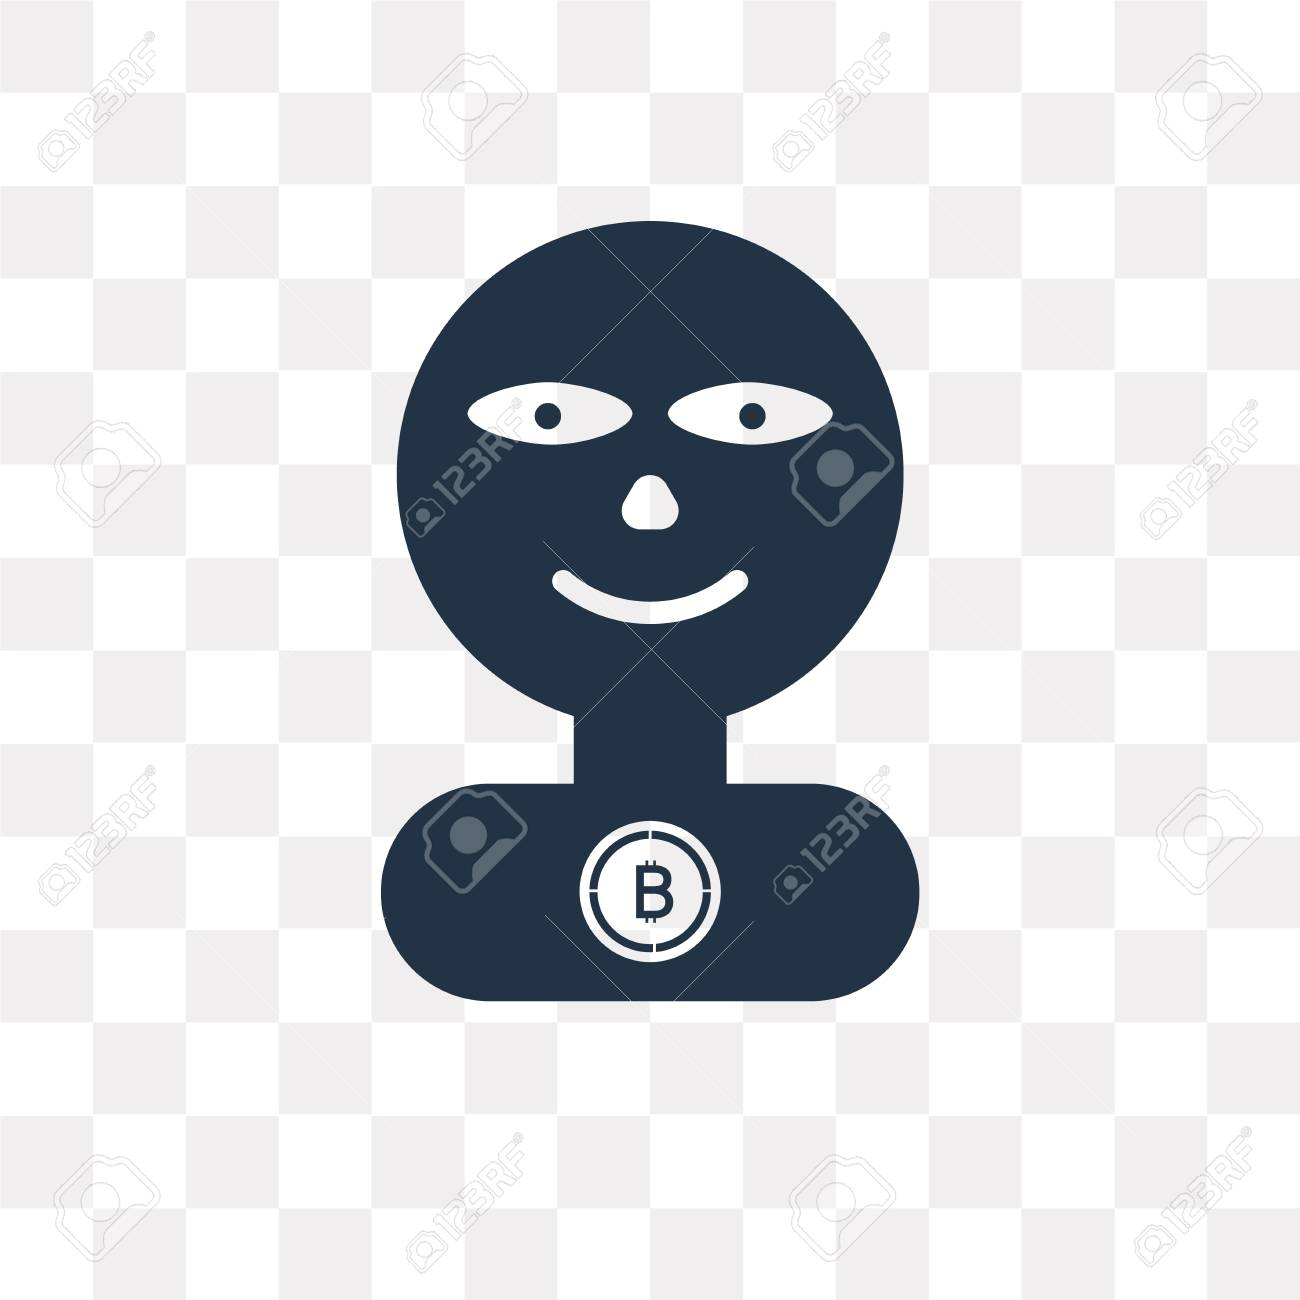 hacker vector icon isolated on transparent background hacker royalty free cliparts vectors and stock illustration image 111614875 123rf com